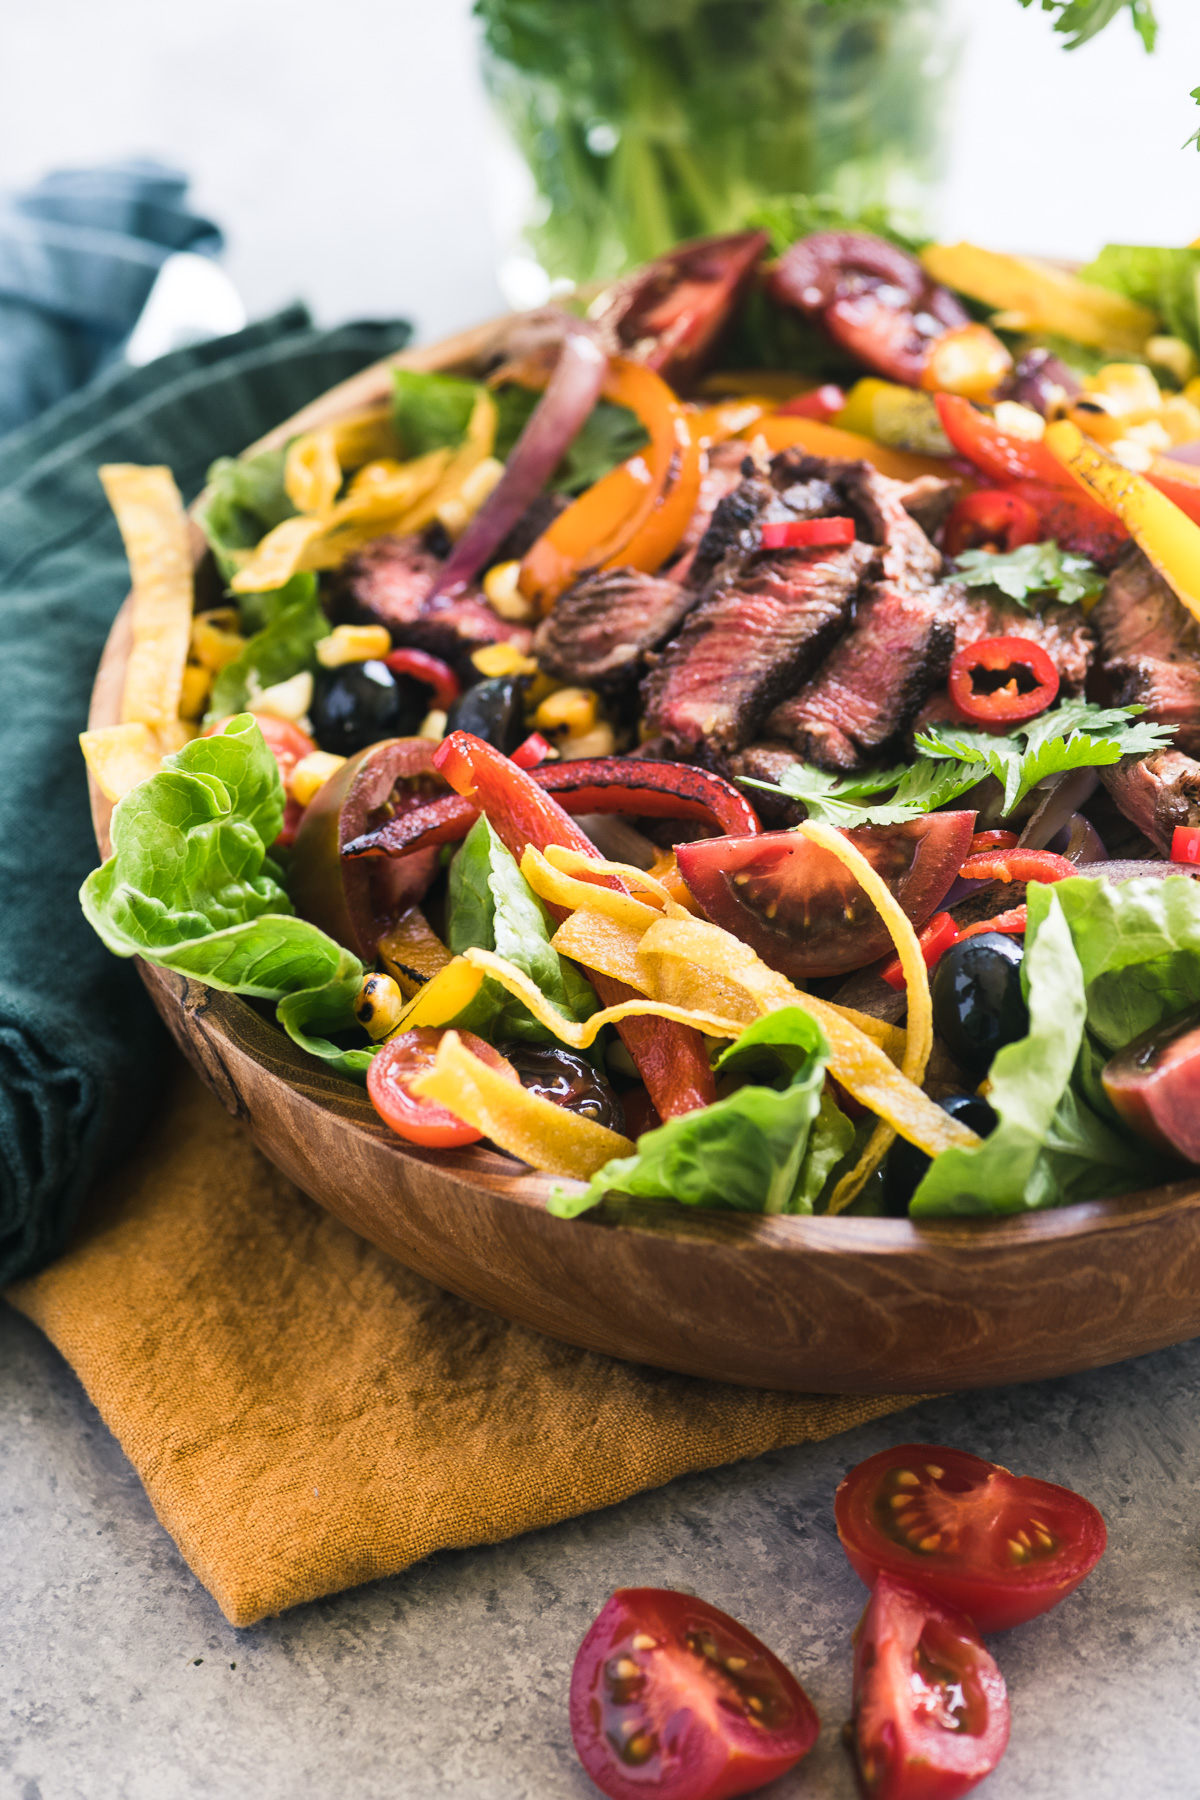 Mexican Fajita Steak Salad in a wooden bowl